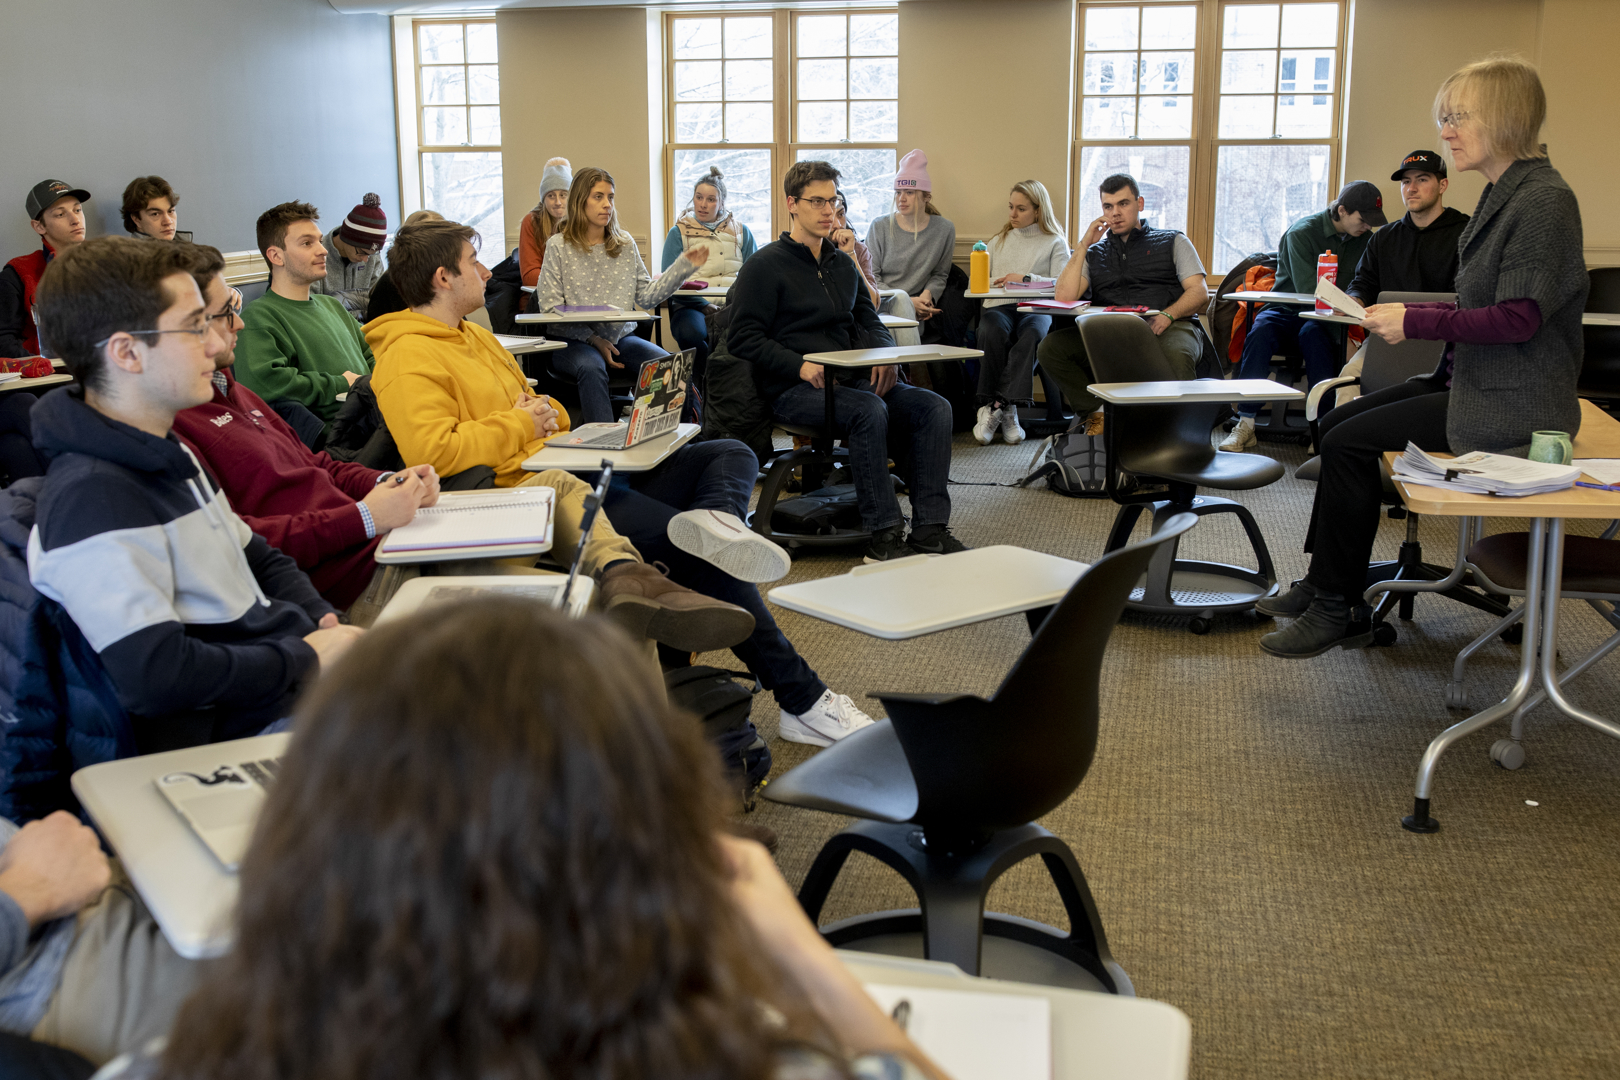 """Costlow lays out the course landscape for her """"Catastrophes and Hopes"""" students on the first day of the winter semester. (Phyllis Graber Jensen/Bates College)"""